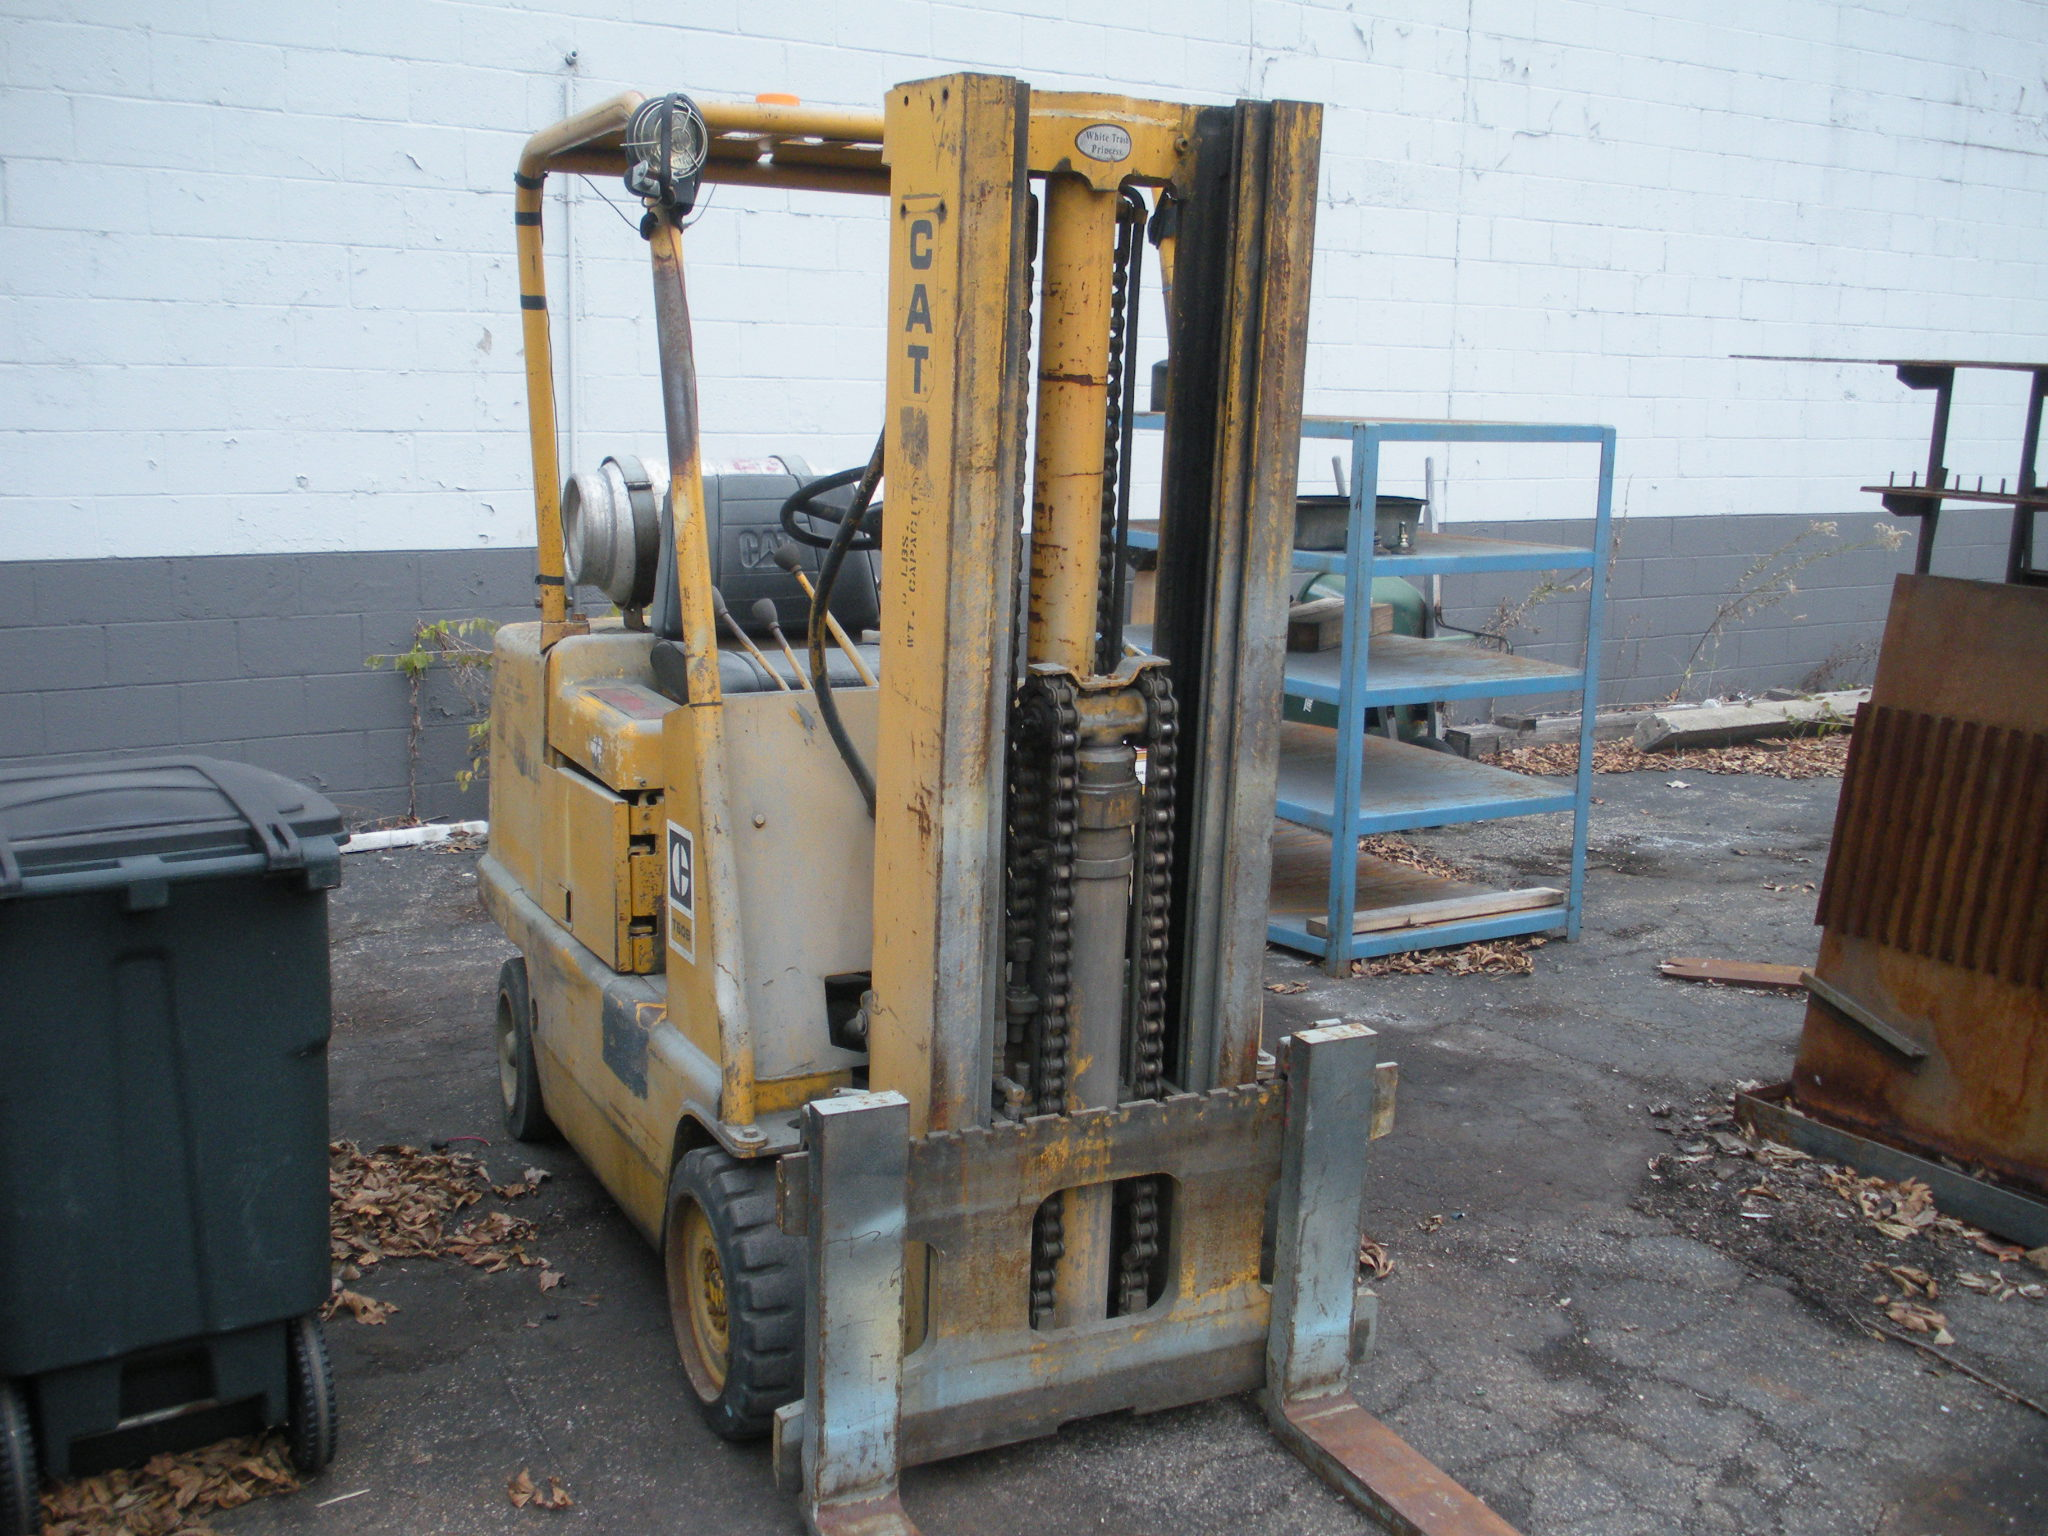 Caterpillar Model T60B 6,000# Forklift, S/N 12N2900